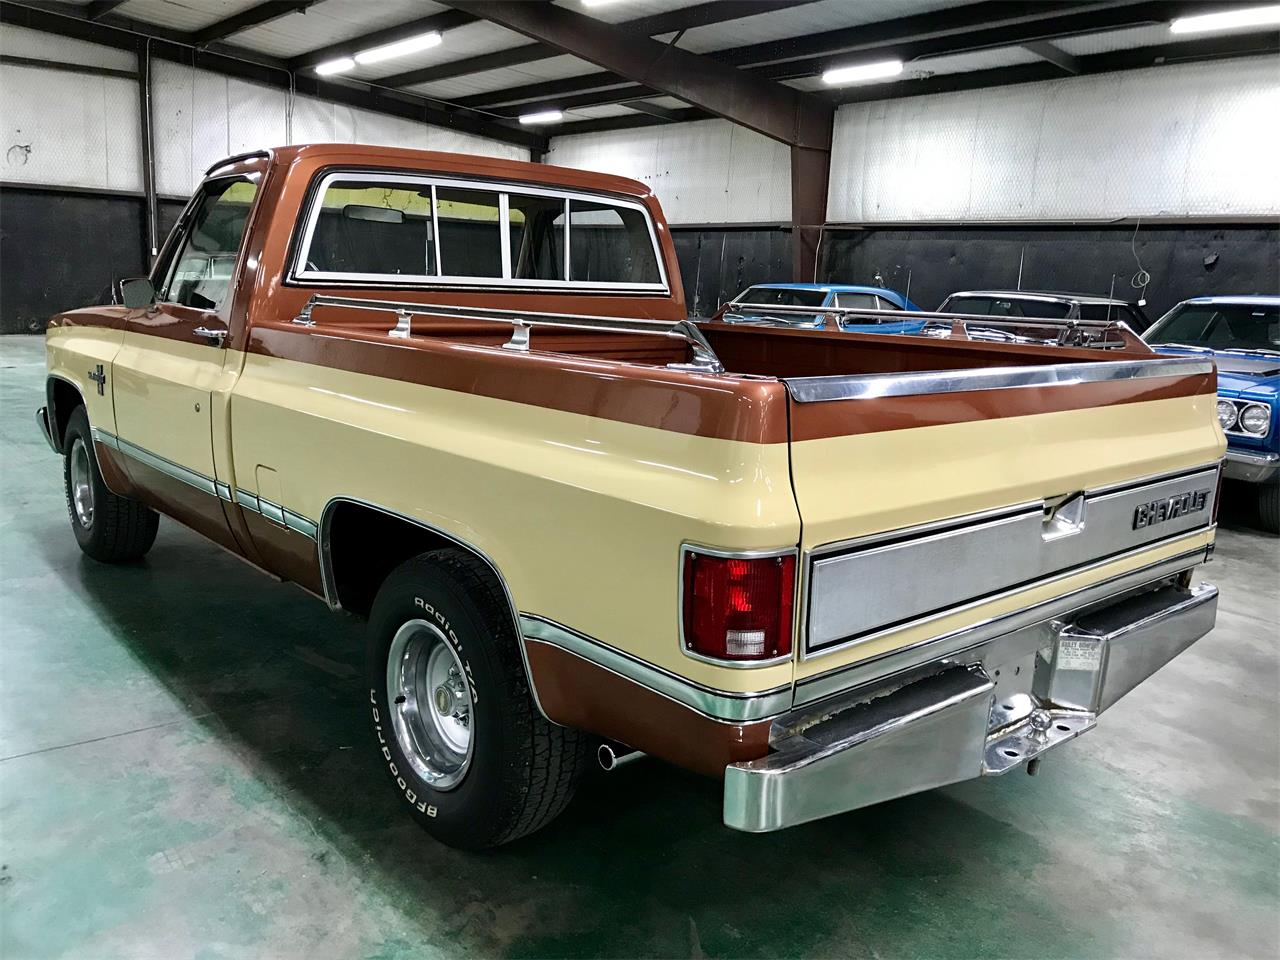 1983 Chevrolet C10 for sale in Sherman, TX – photo 3